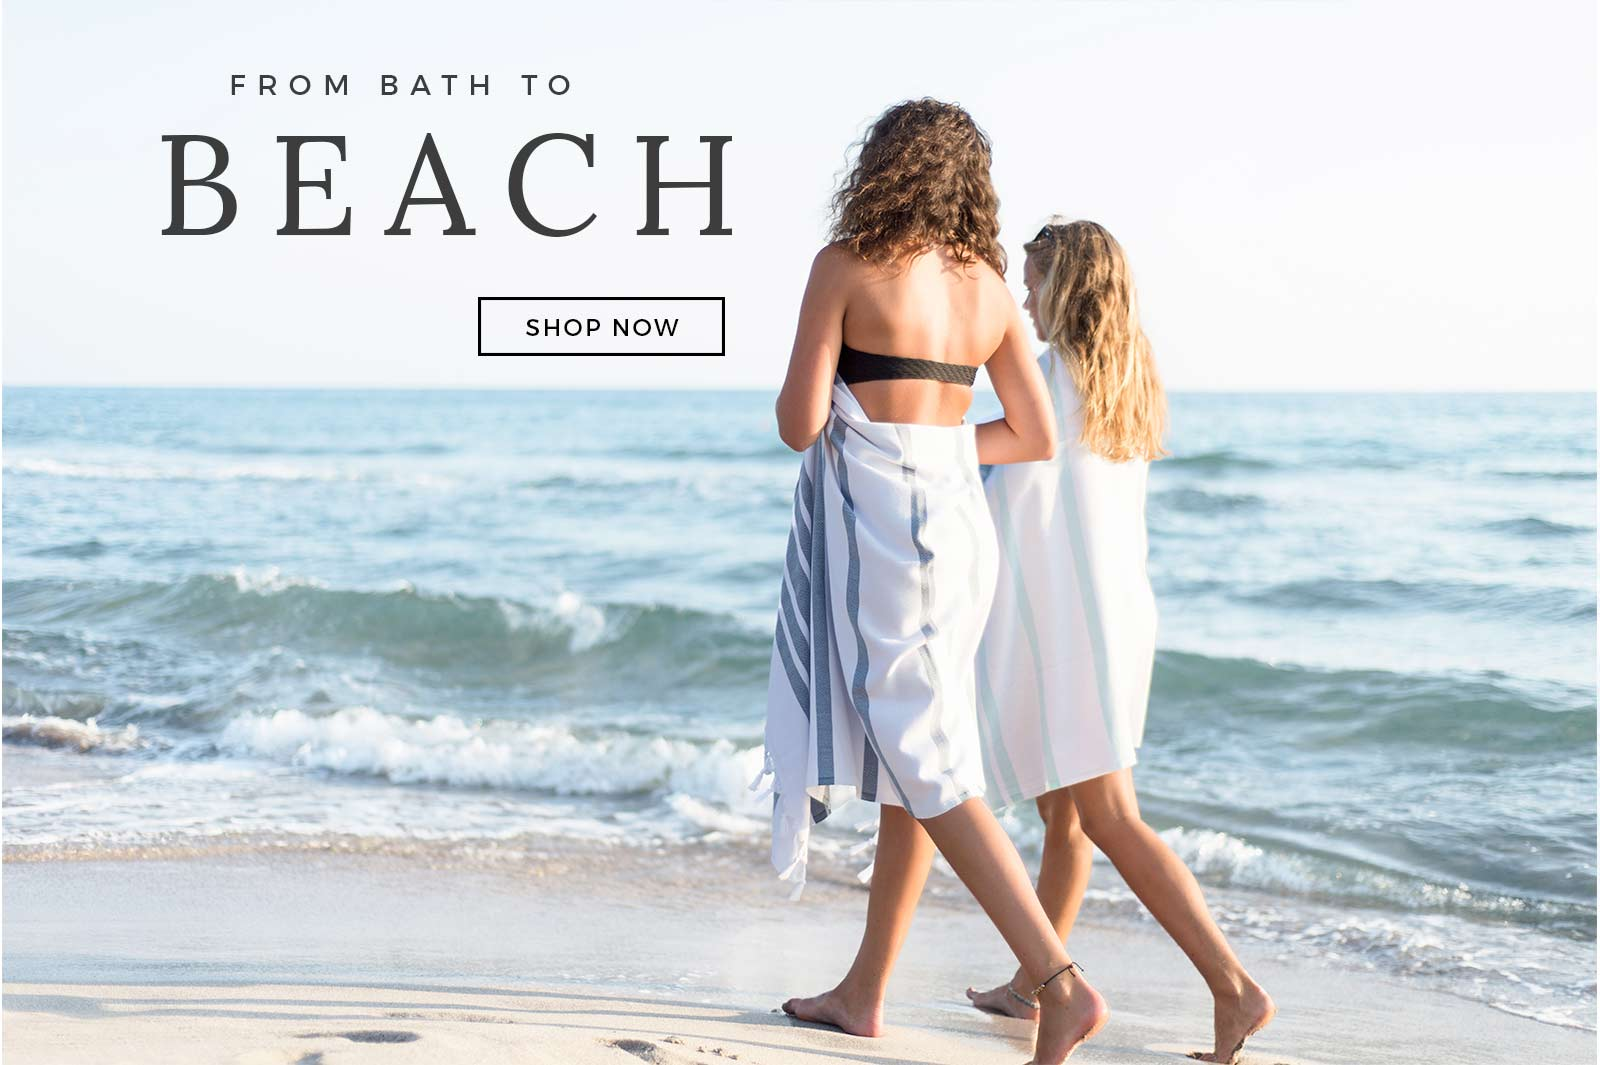 Bath & Beach Turkish Towels